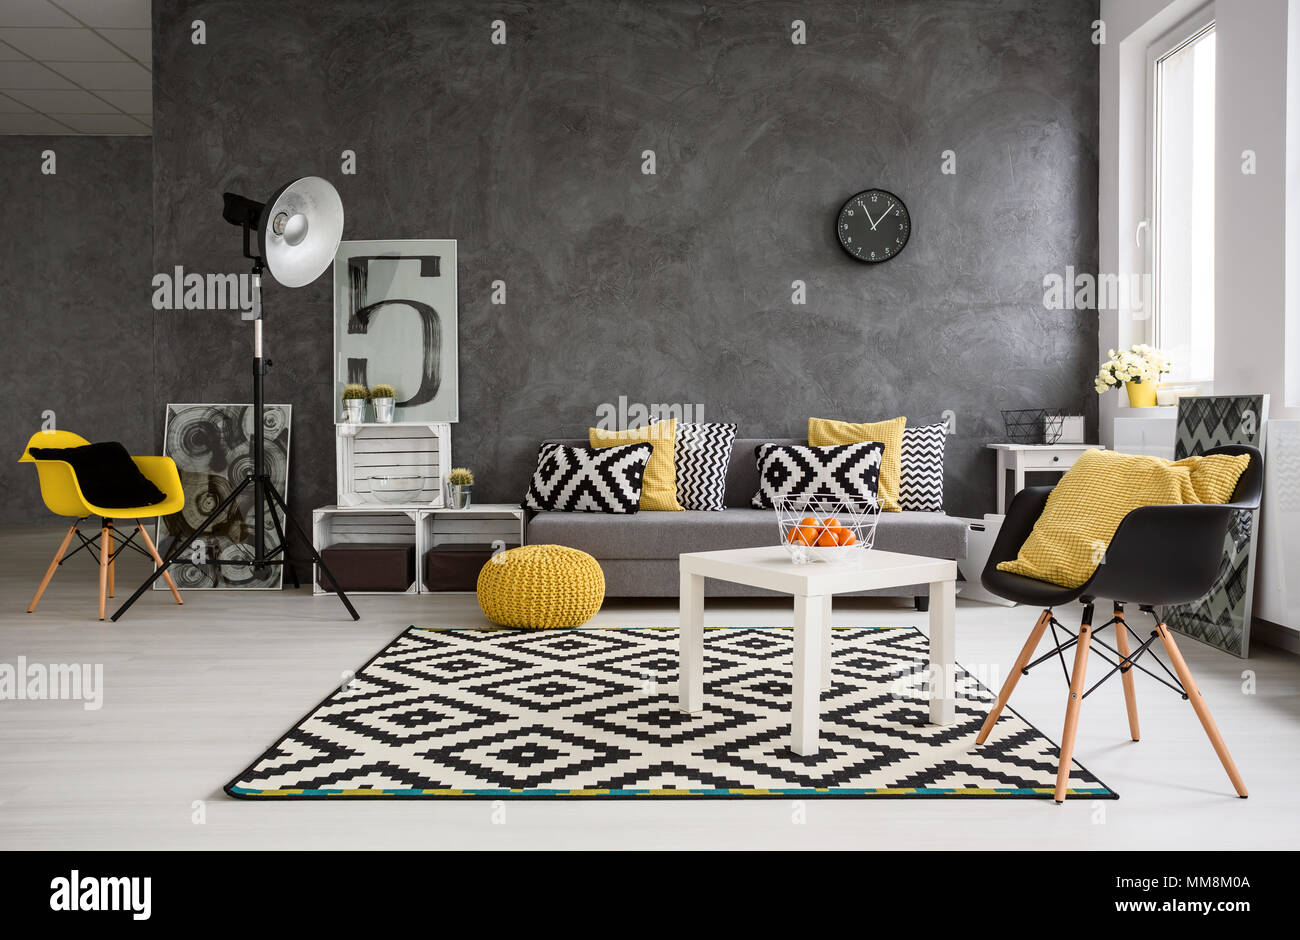 Yellow Decor For Living Room Stylish Spacious Living Room With Grey Walls And Black White And